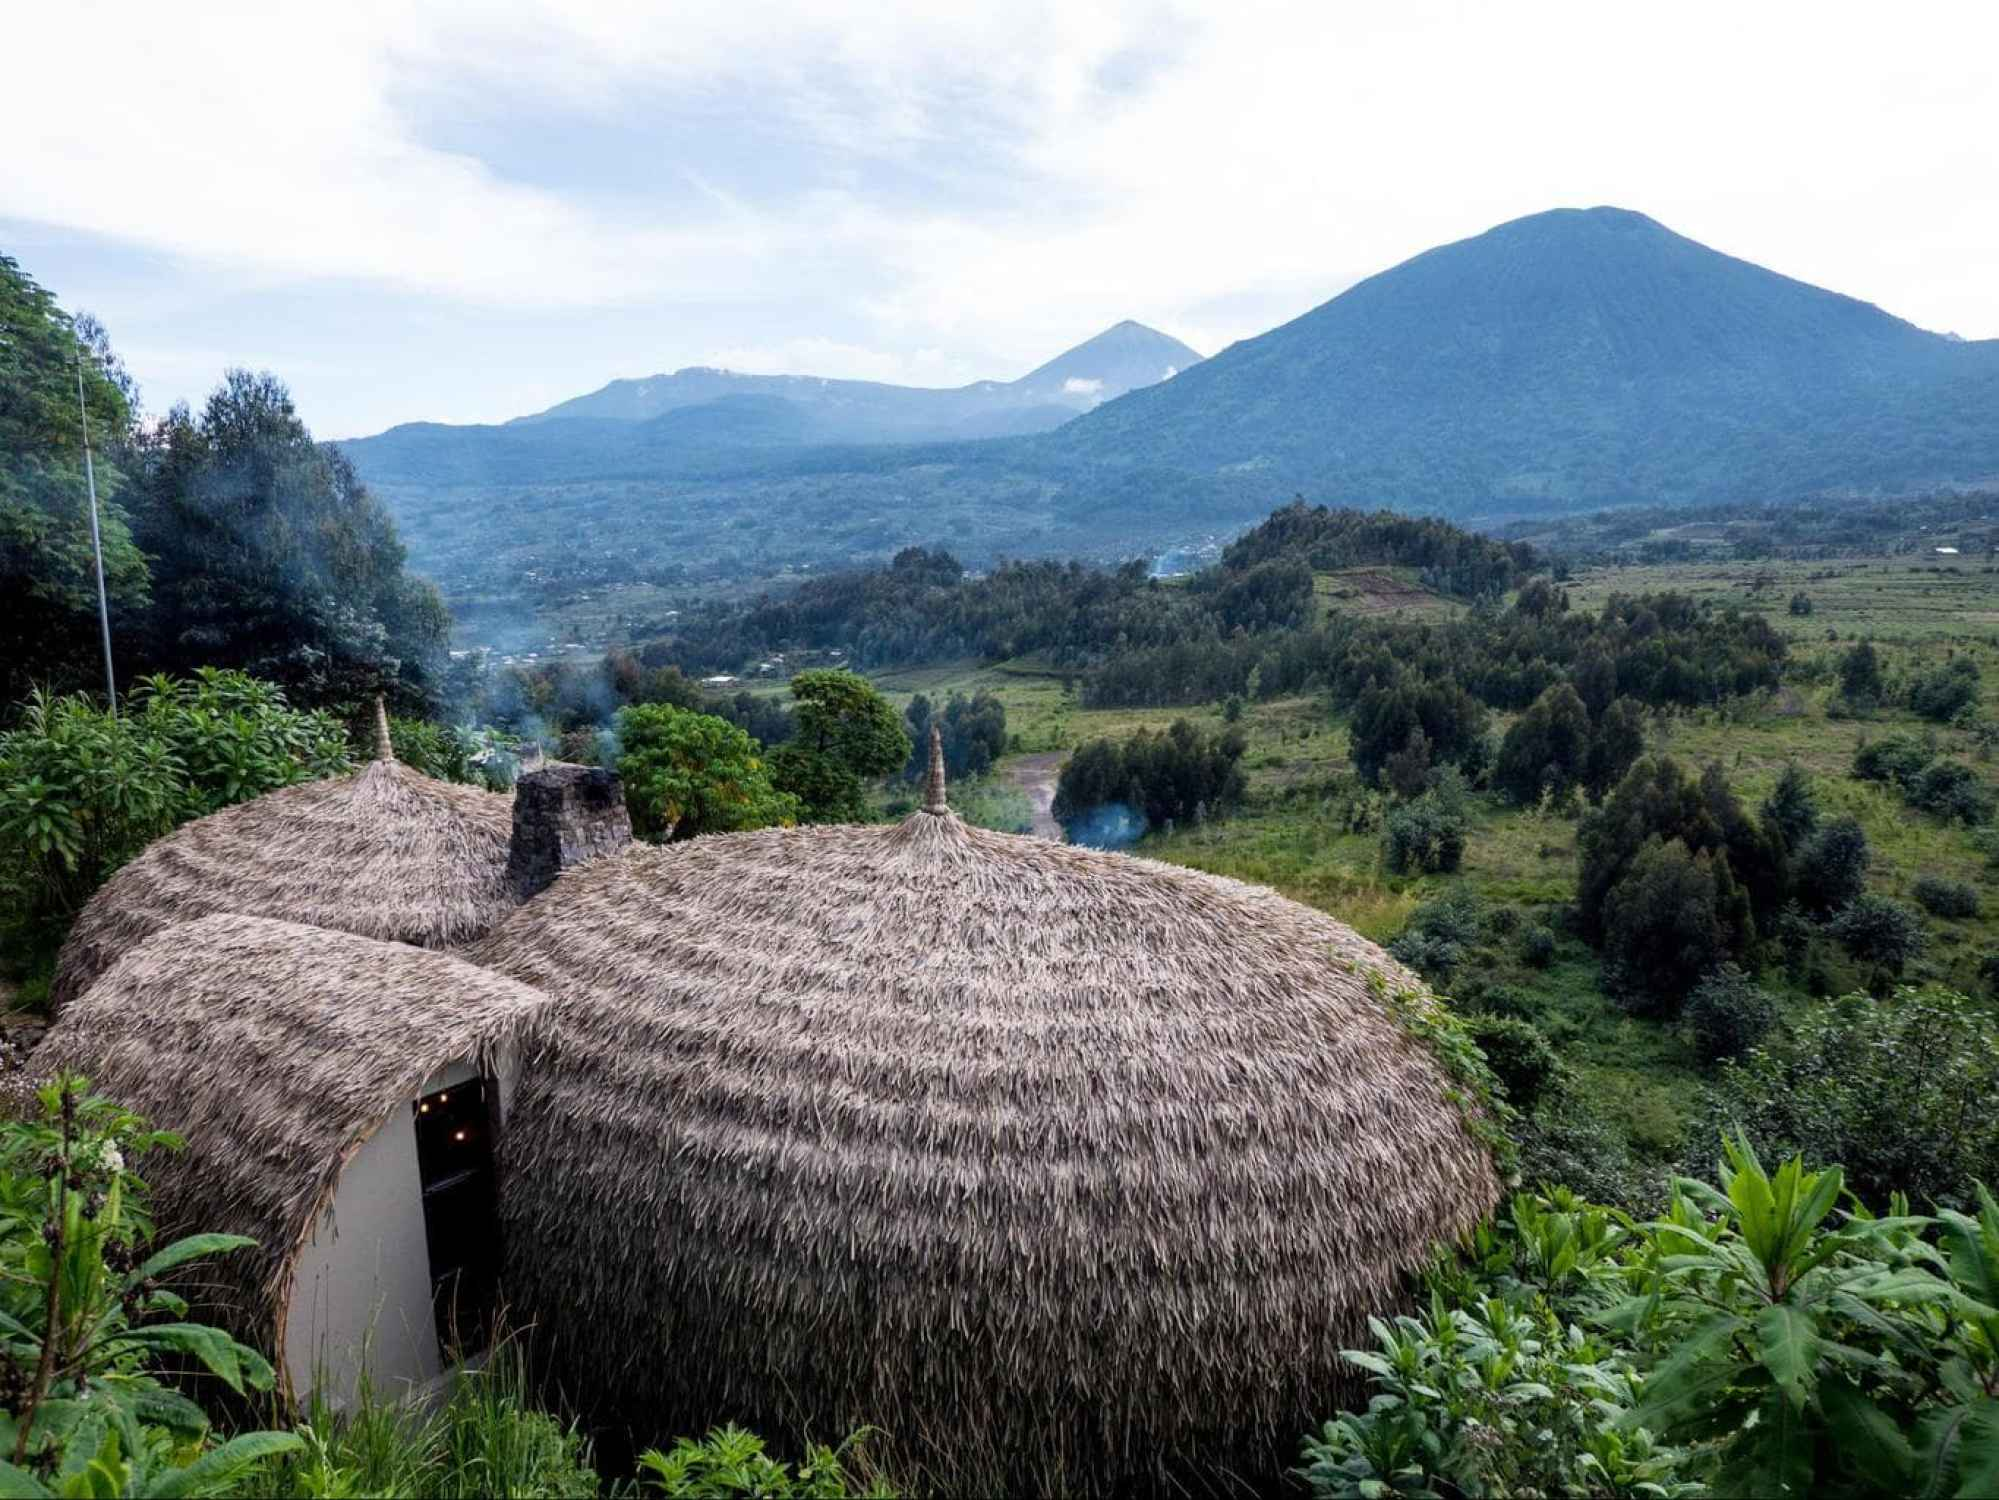 Bisate Lodge above the mountain